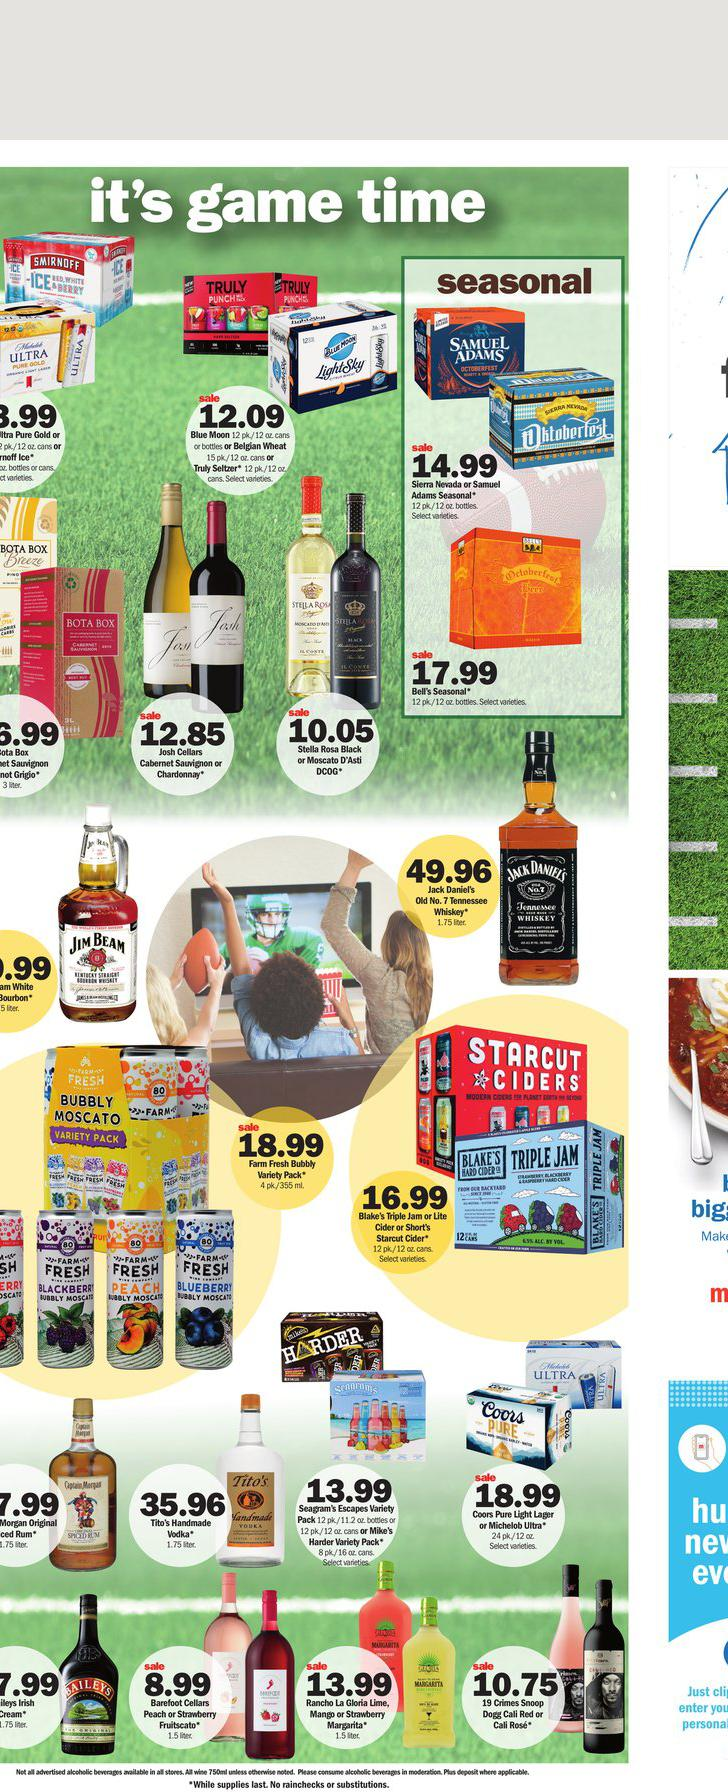 12.09.2021 Meijer ad 12. page